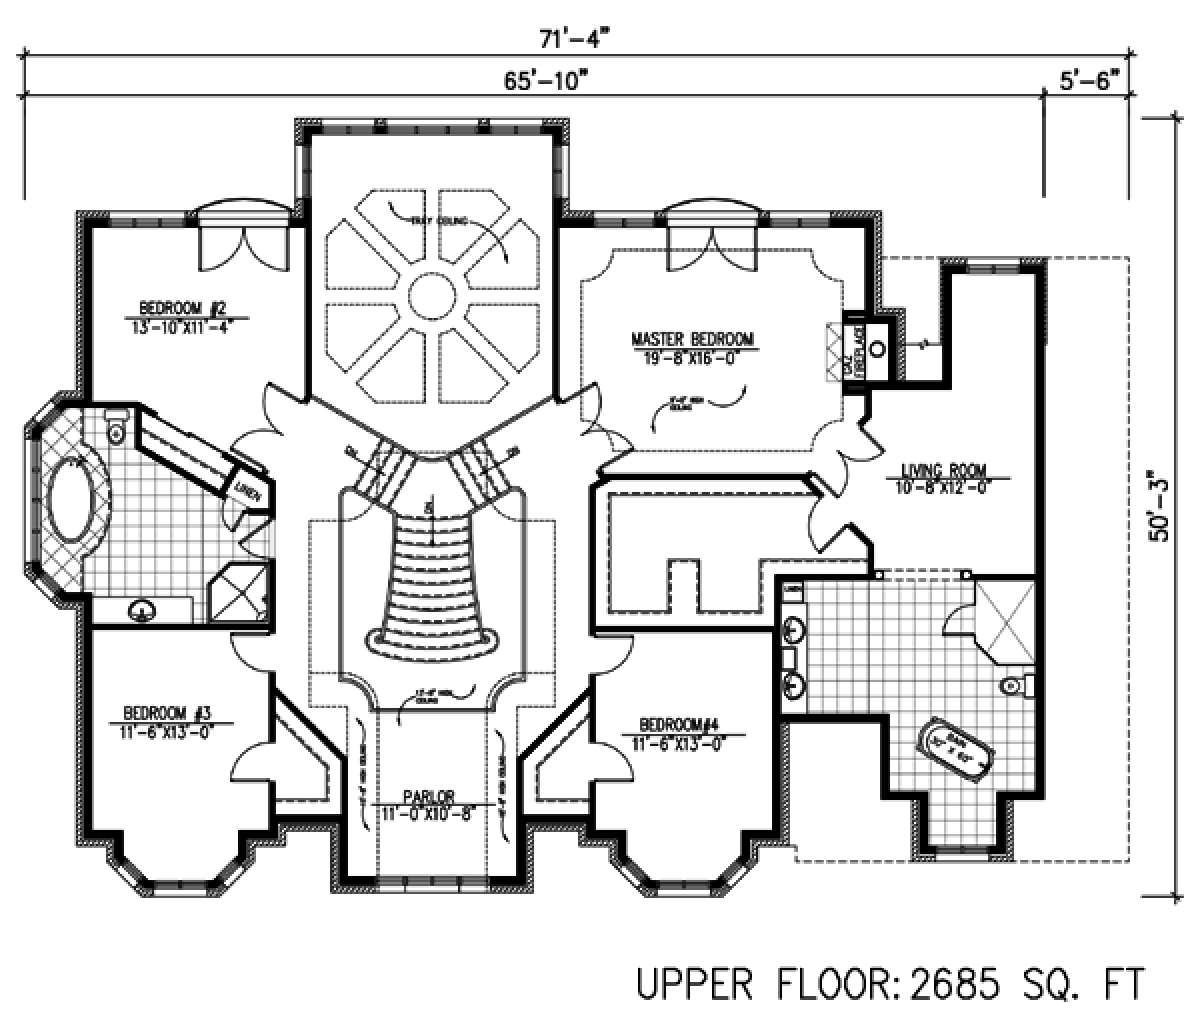 Palatial Estate With Grand Double Staircases 135 Vozeli Com | Double Staircase House Plans | Bedroom | First Floor | Residential | Blueprint | Modern